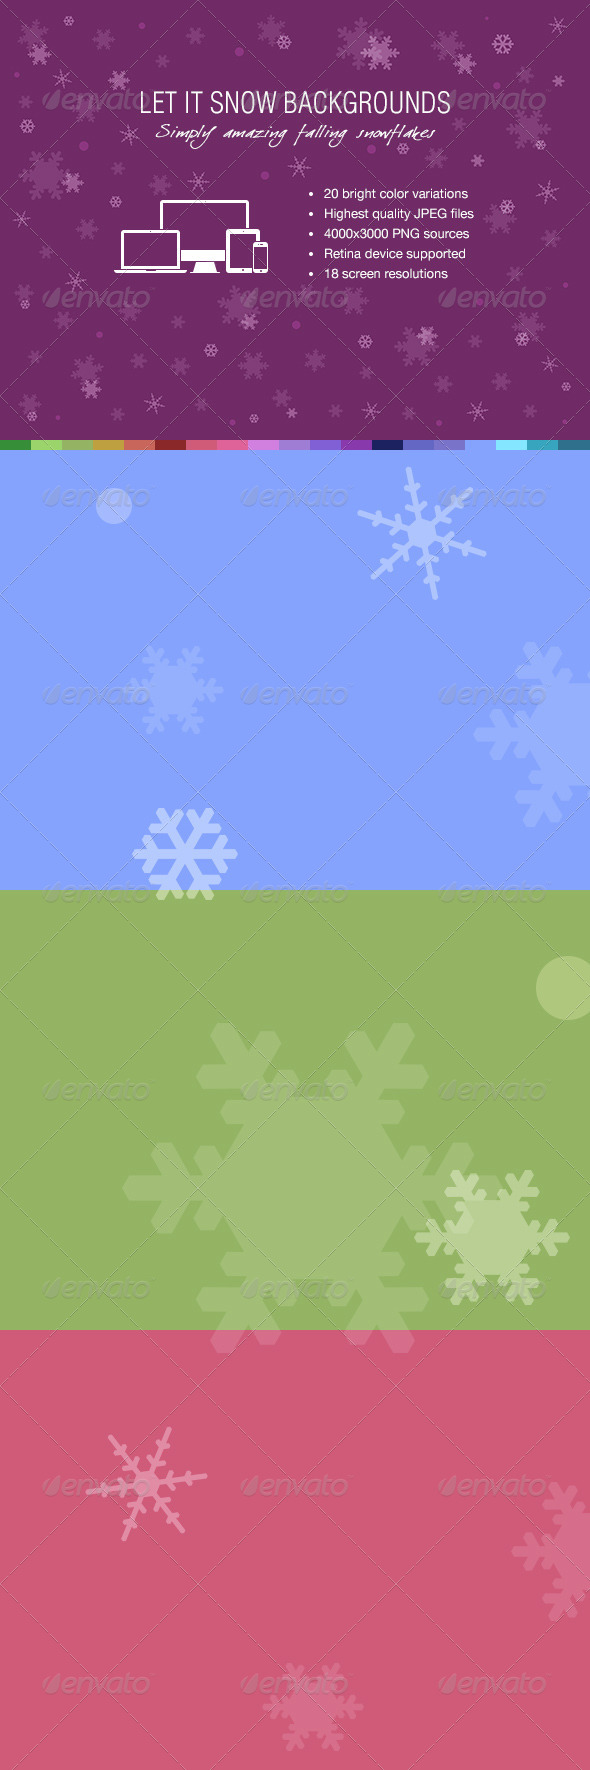 GraphicRiver Let It Snow Backgrounds 6399150